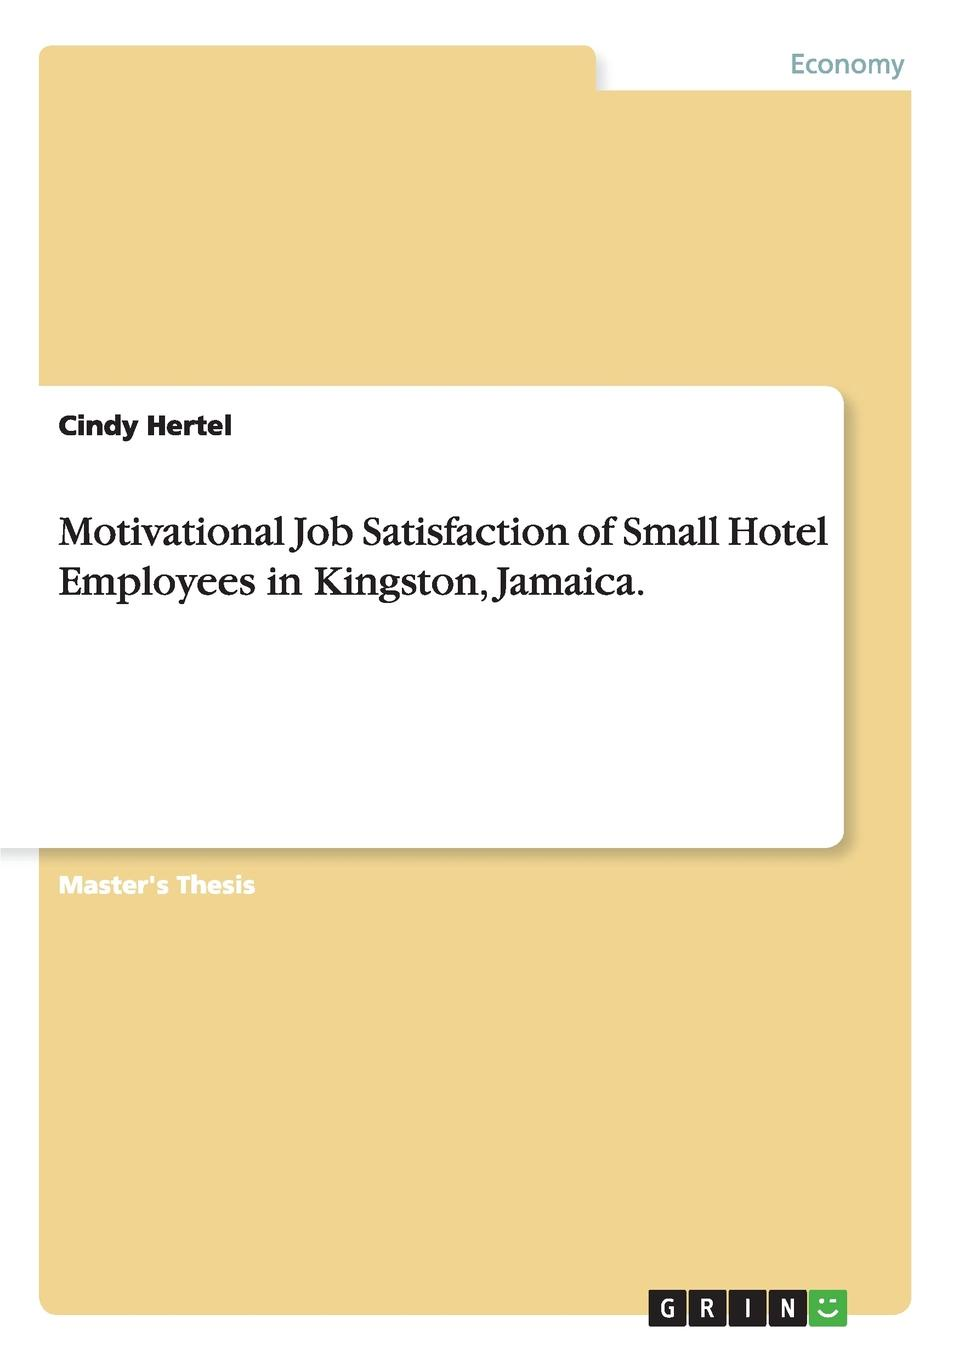 Cindy Hertel Motivational Job Satisfaction of Small Hotel Employees in Kingston, Jamaica.